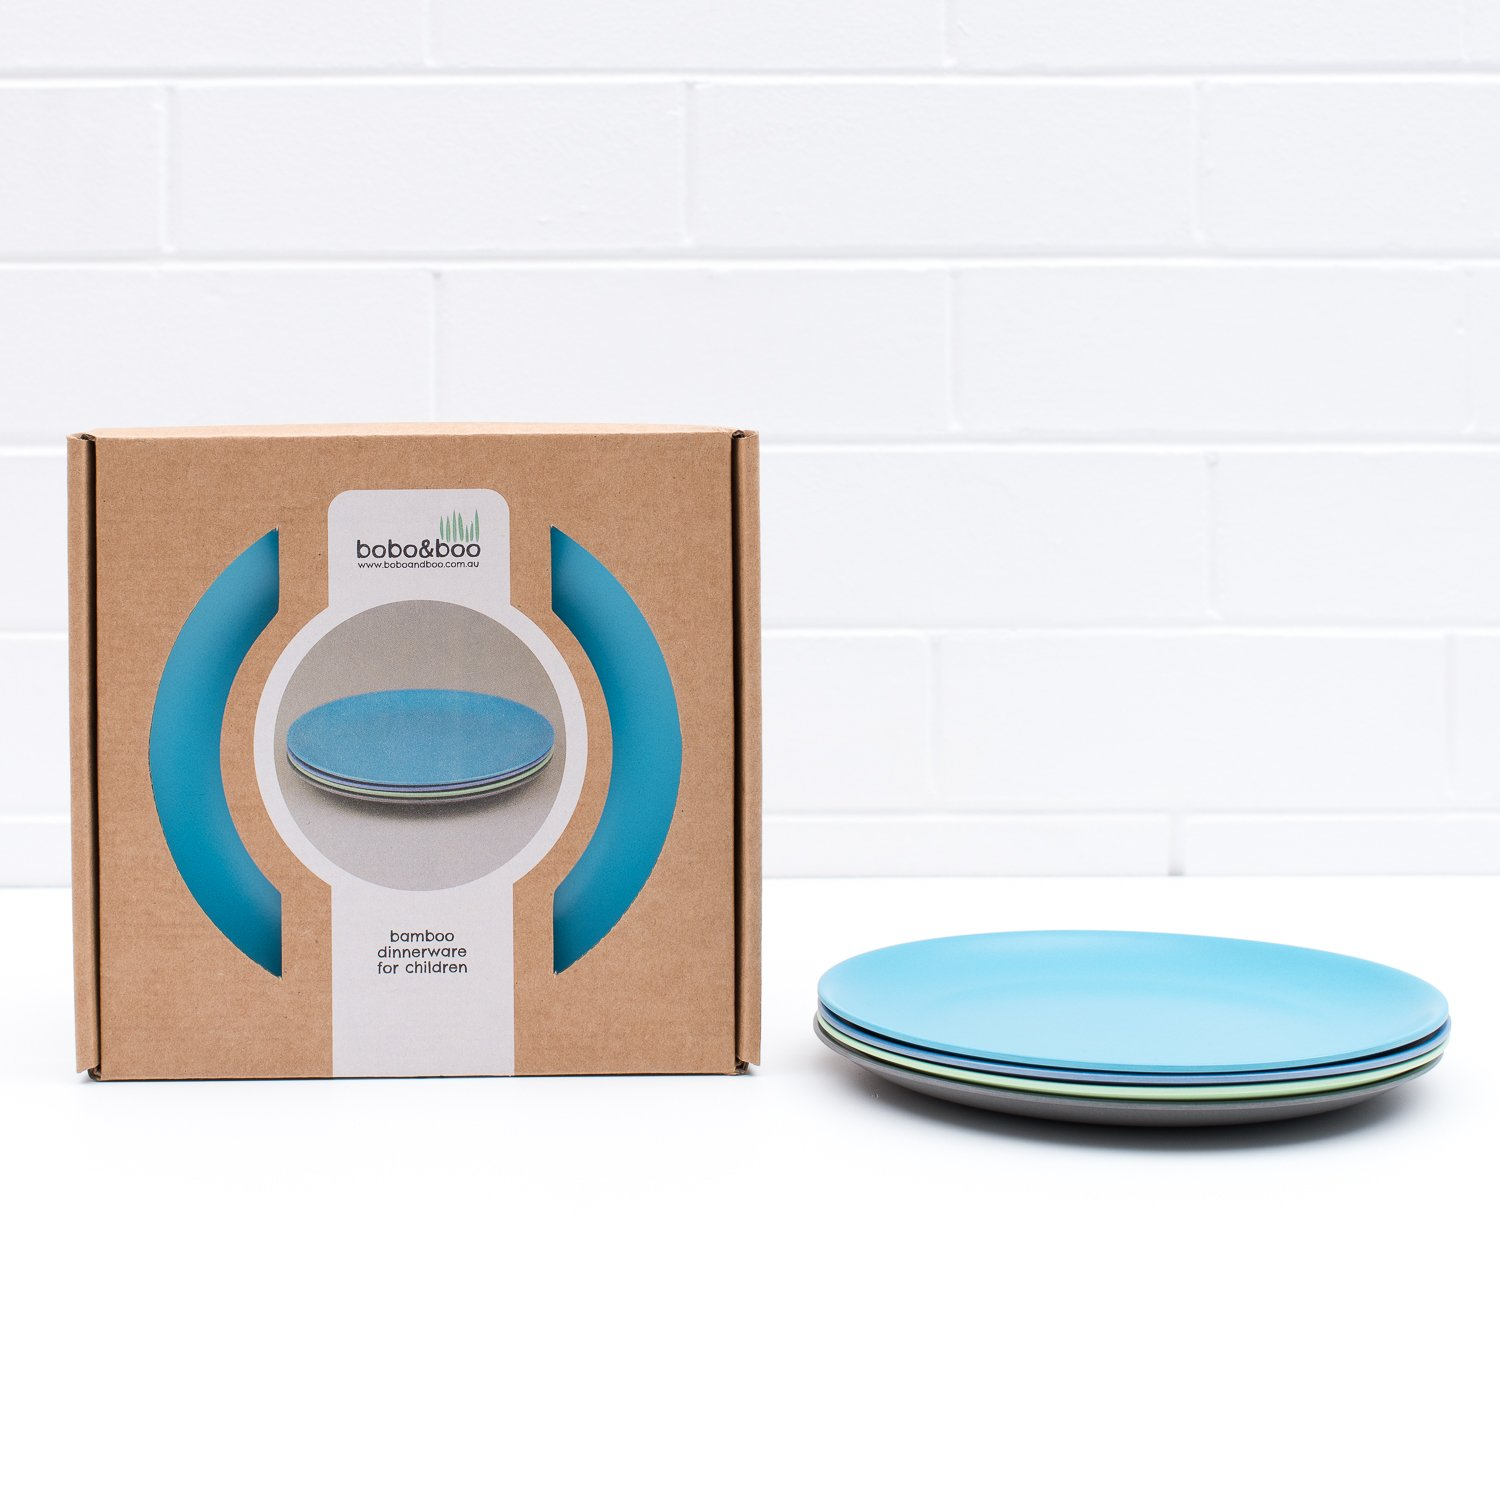 Bobo&Boo Bamboo Kids Plates, Set of 4 Eco Friendly Toddler Plates :: Non Toxic Children's Dinnerware for Babies & Big Kids :: Mix and Match :: Great Gift for Baby Showers & Birthdays, Coastal BoBo and Boo